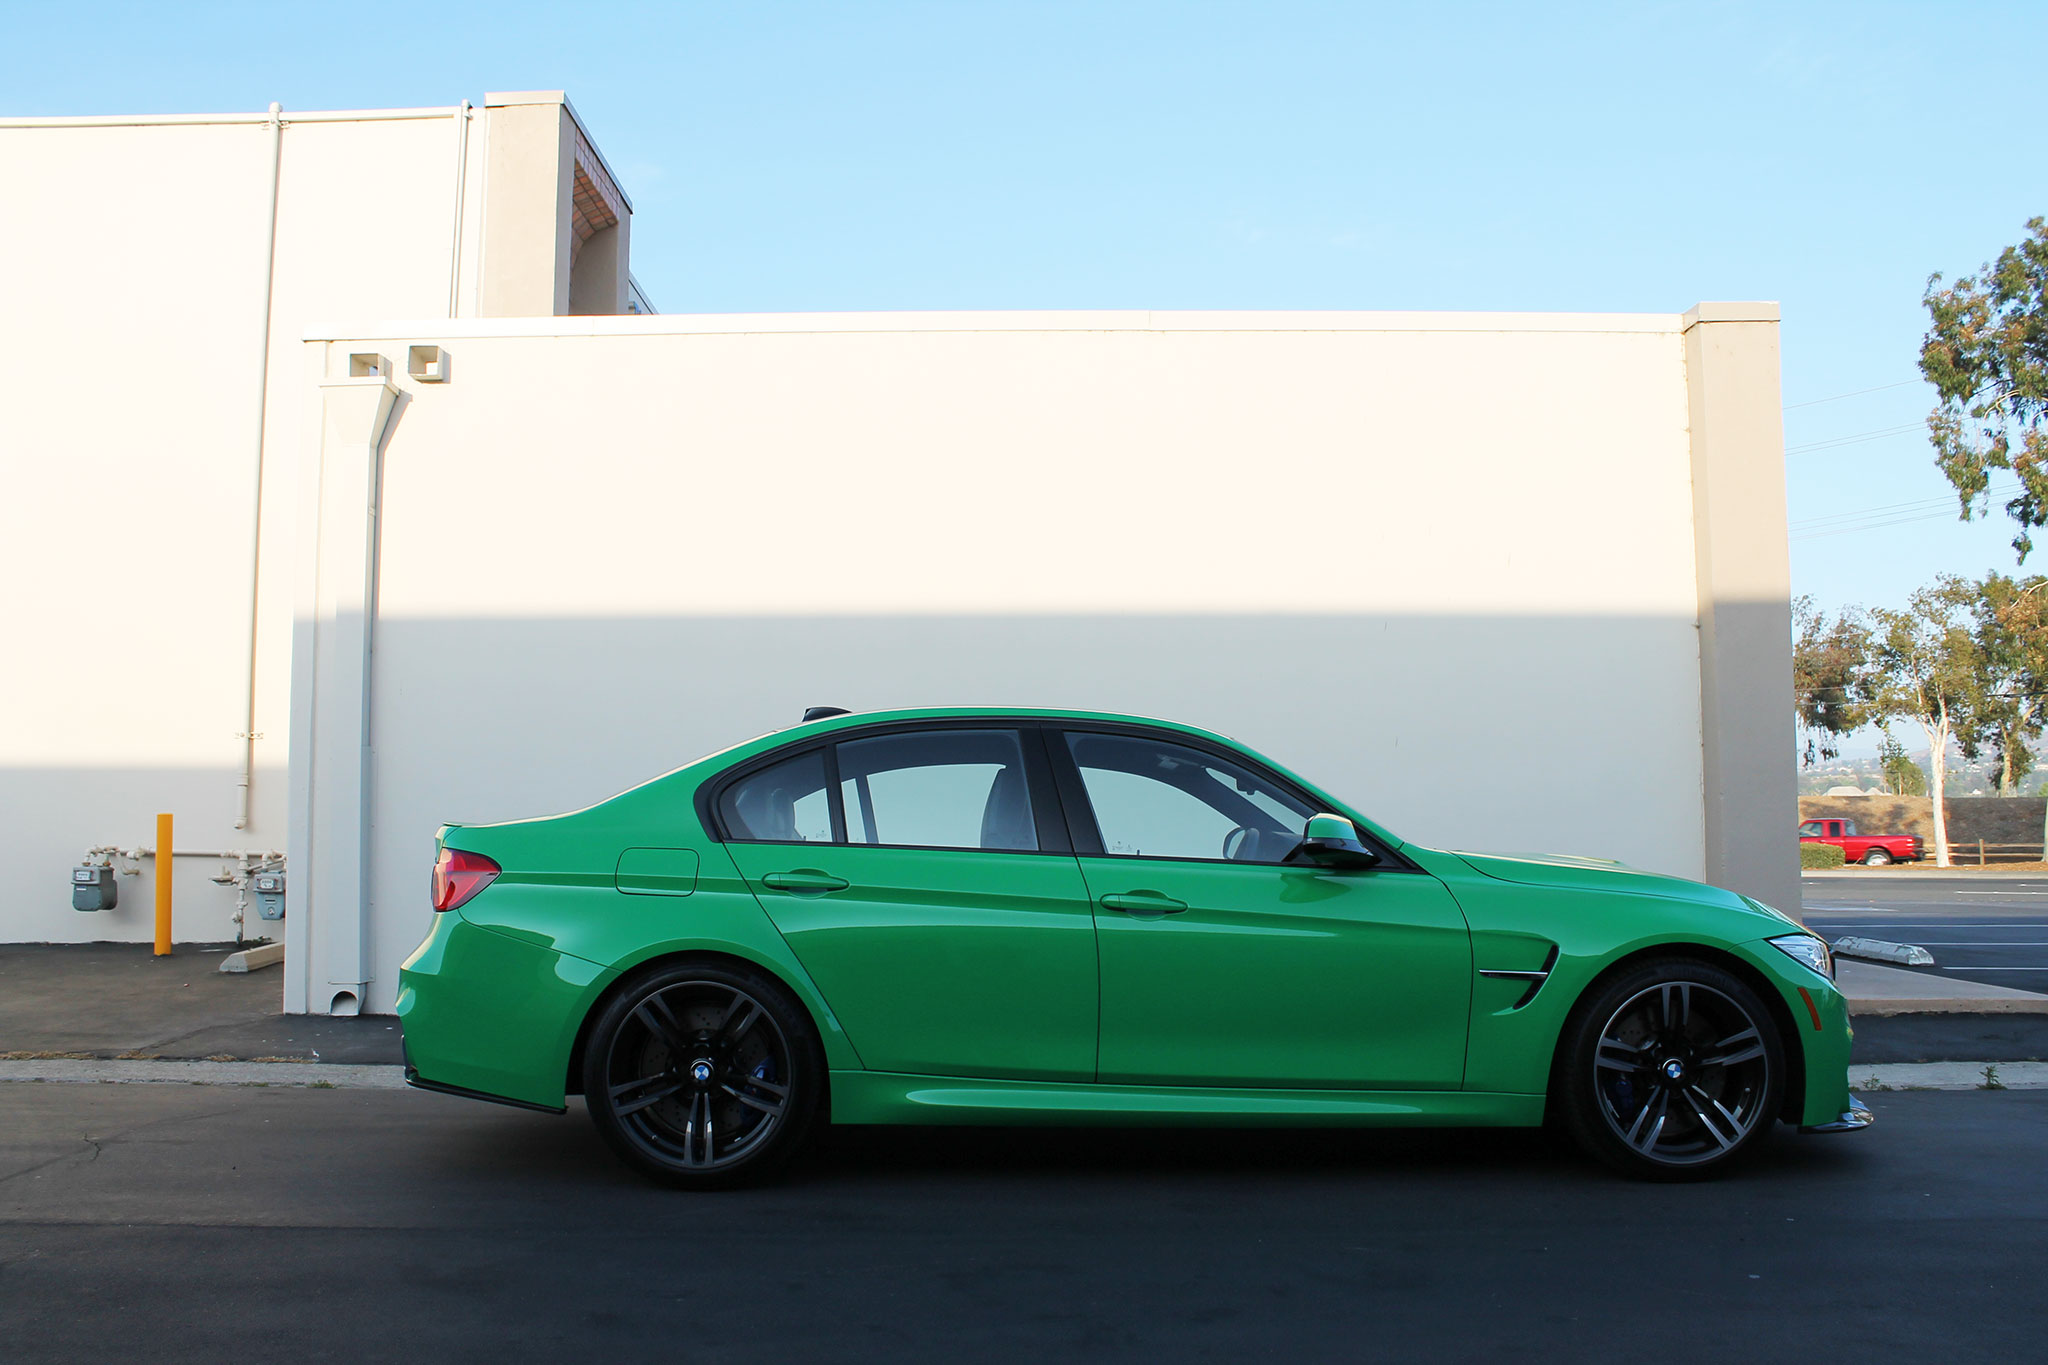 RW-Carbon-BMW-F80-M3-Signal-Green-Photoshoot-9